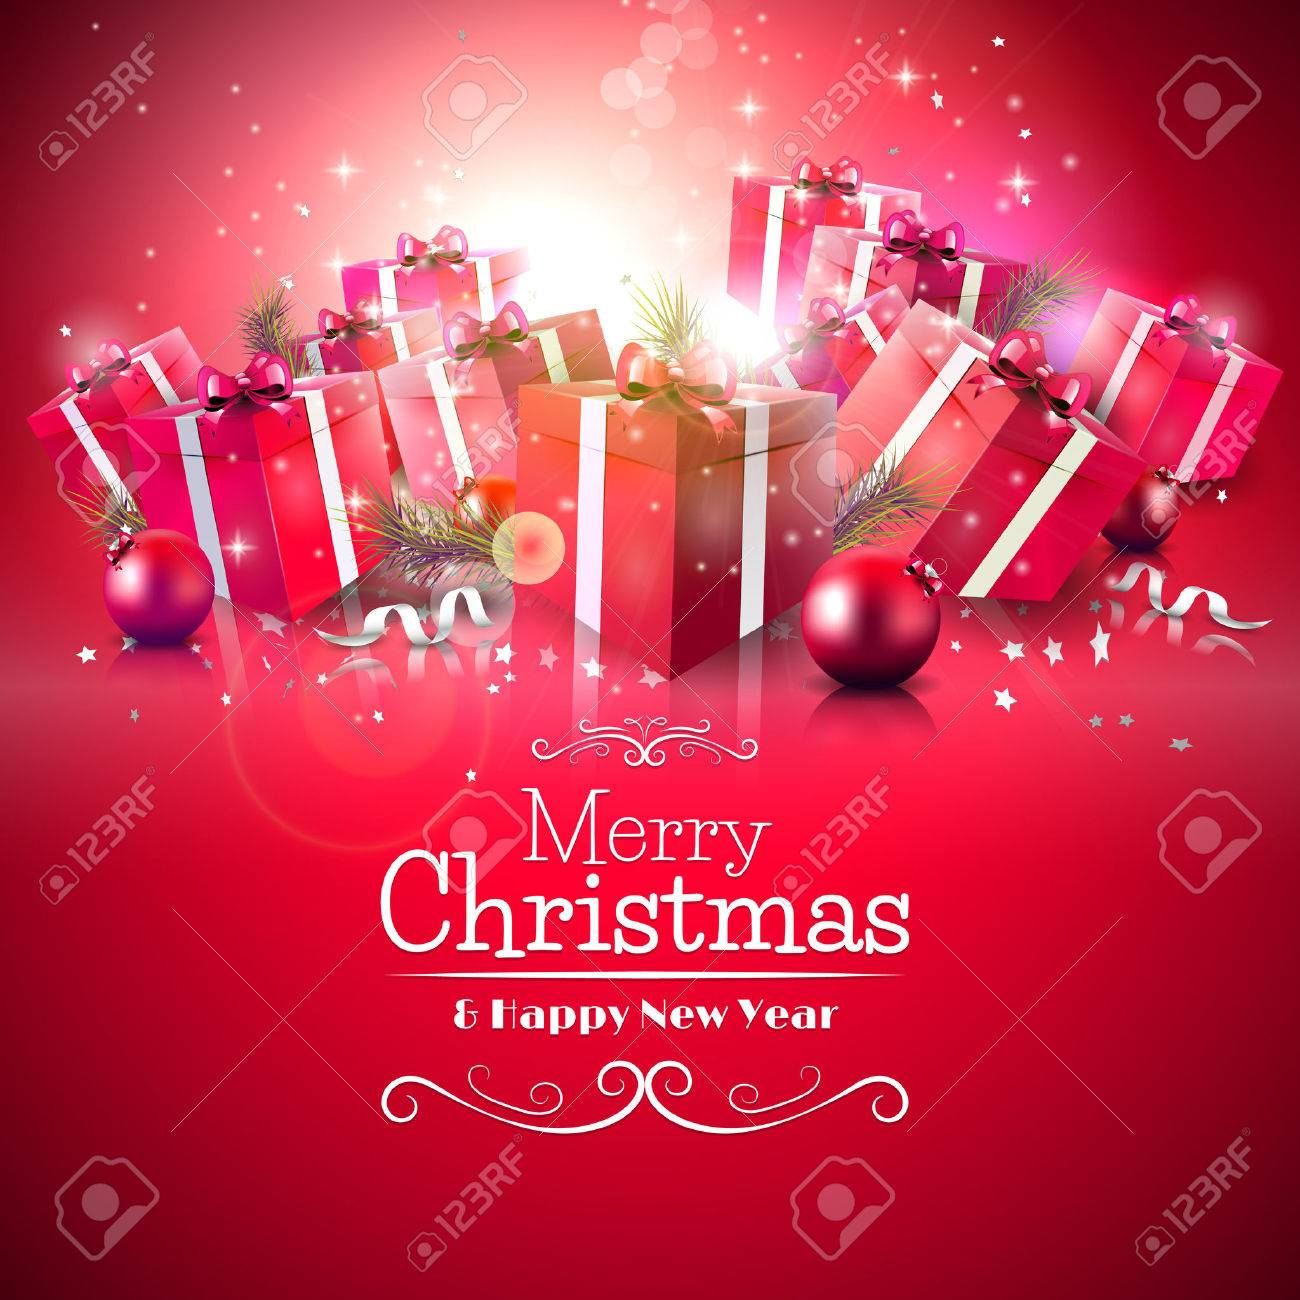 Luxury Christmas Greeting Card With Red Gift Boxes And Calligraphic  Lettering Stock Vector   32440458